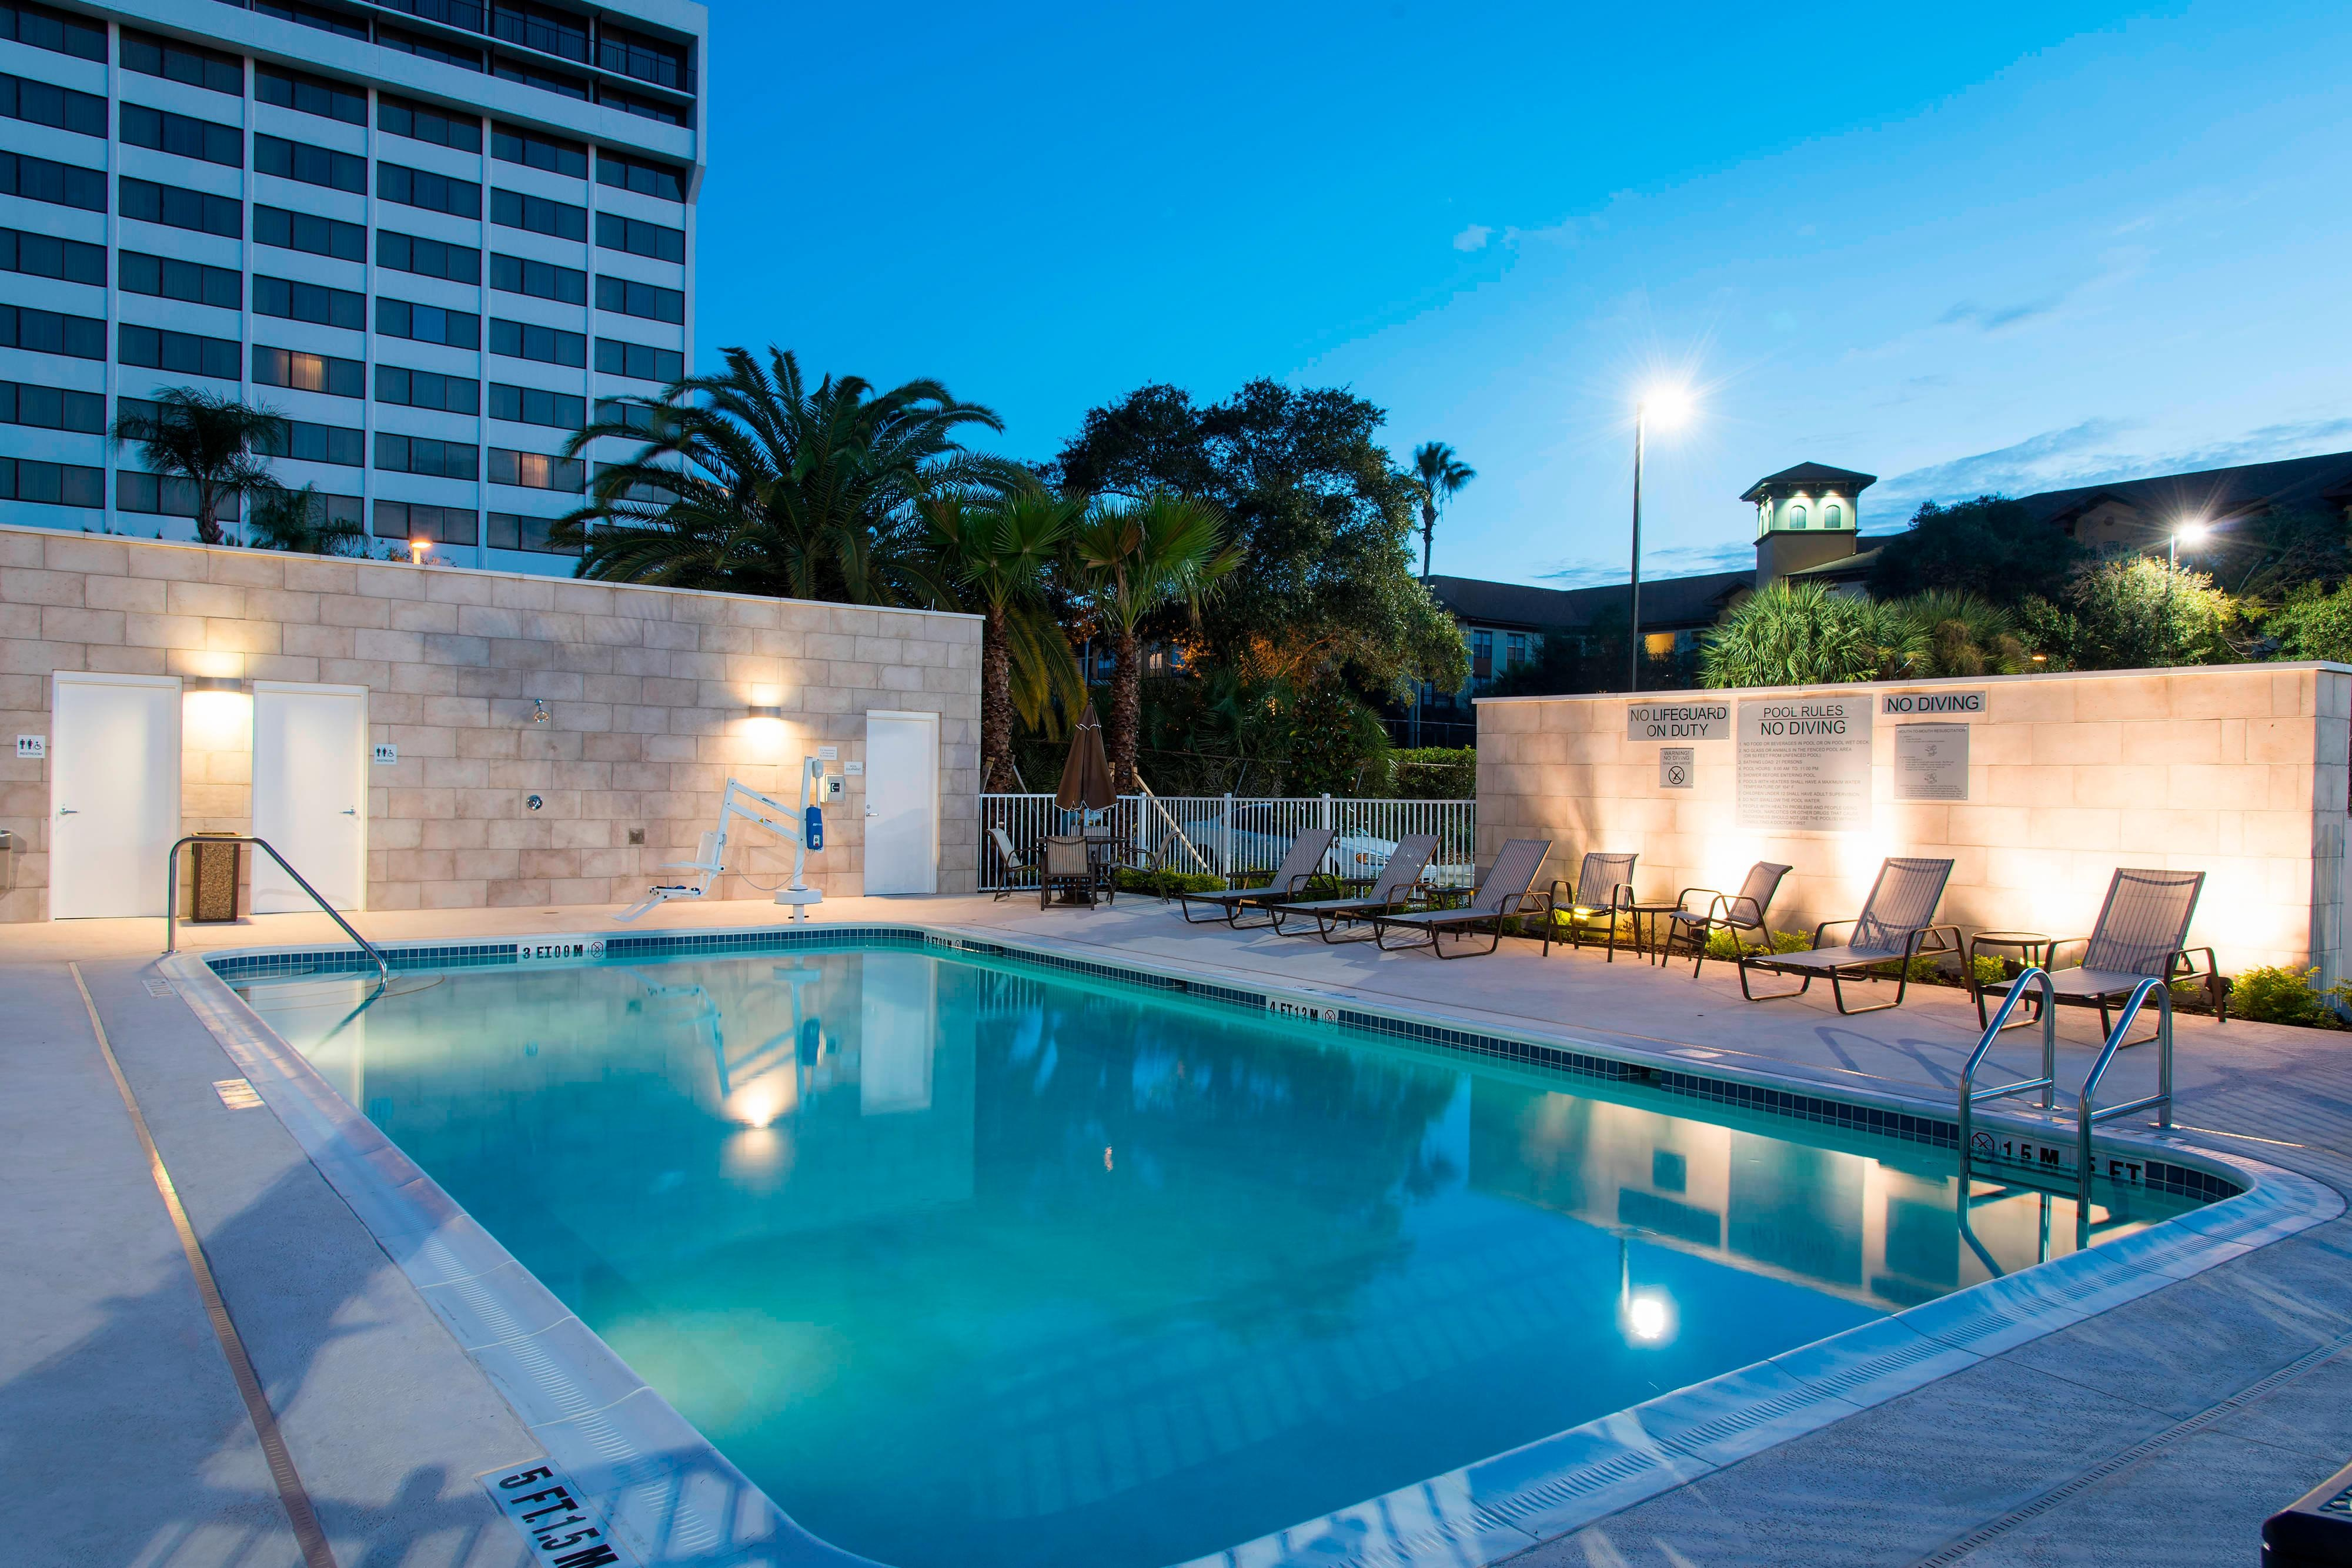 Outdoor Heated Pool with Seating